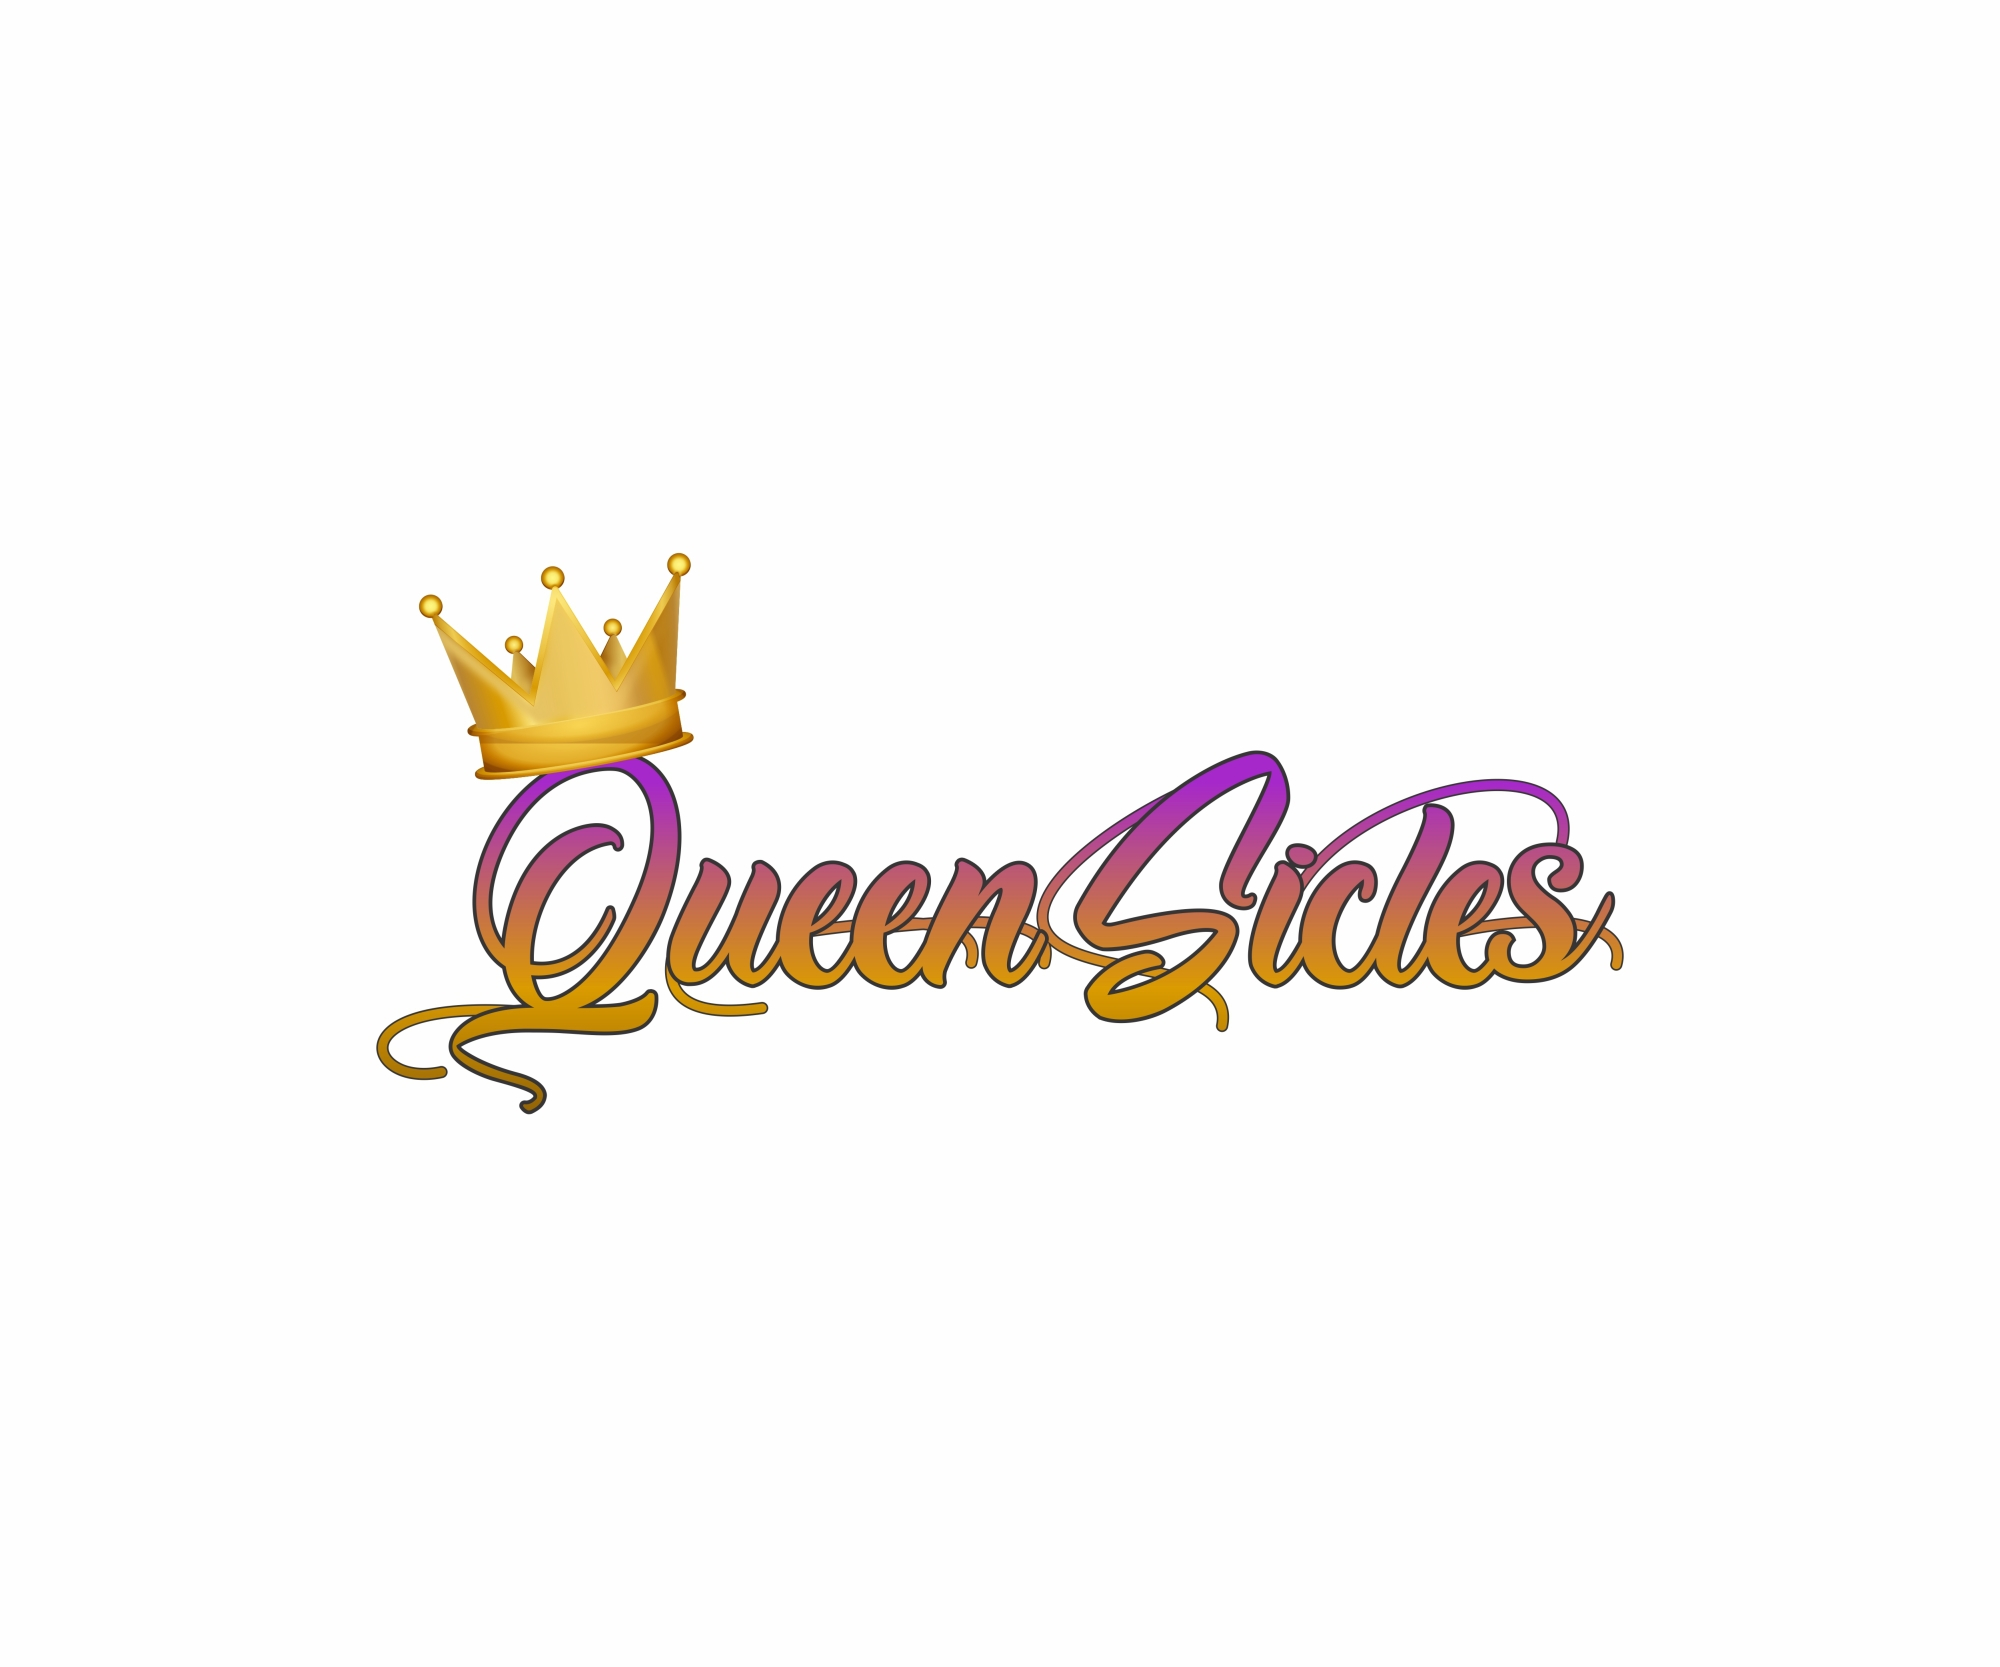 Royally Delicious Sweets: Queensicles & Treats to Sign with The 95 Agency